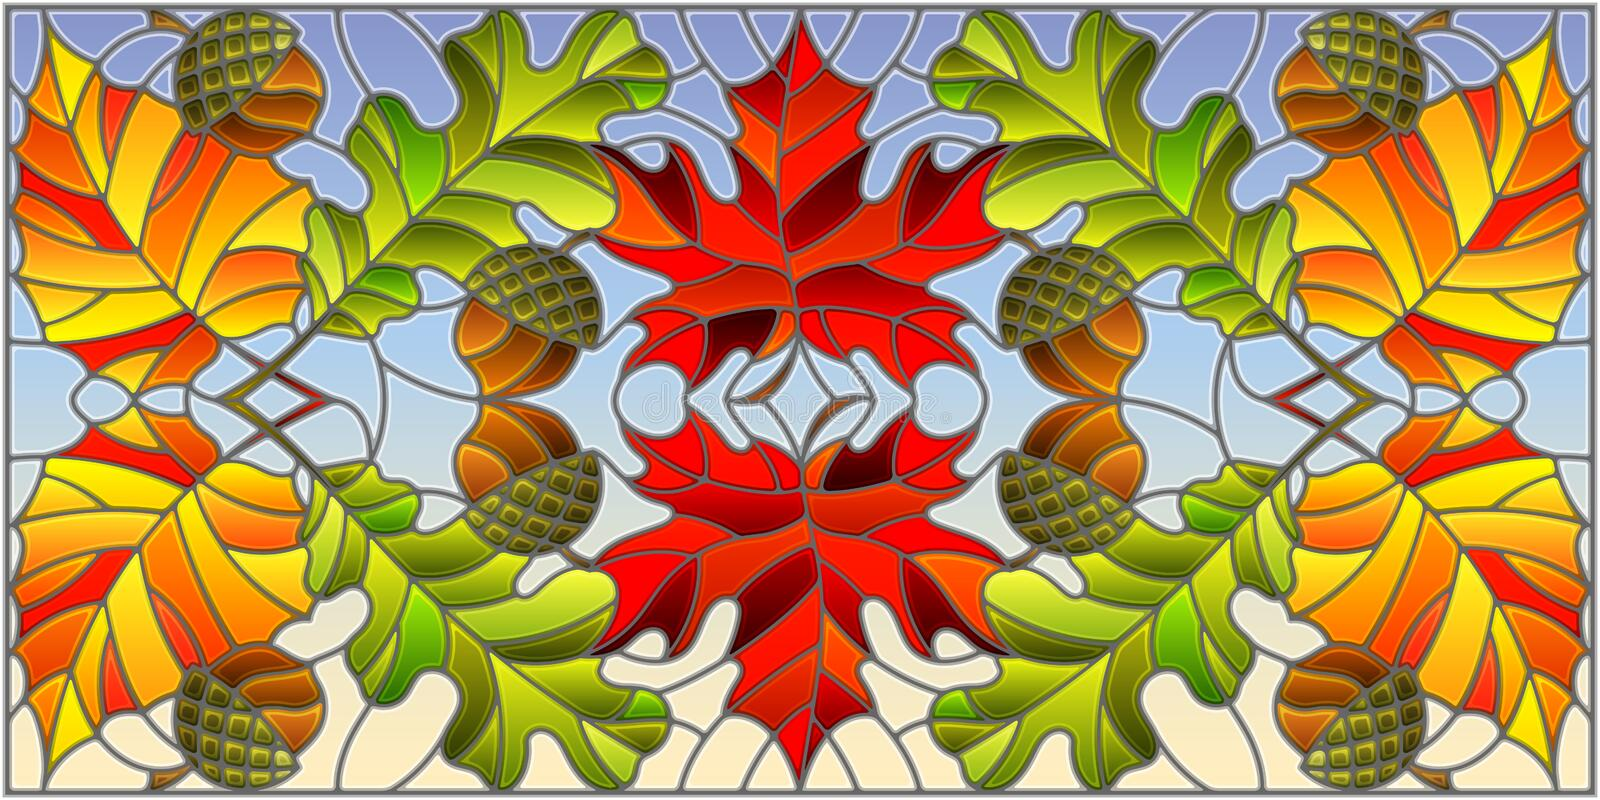 Stained glass illustration with autumn, leaves, oak, maple , aspen and acorns on a sky background,horizontal orientation. Illustration in stained glass style on royalty free illustration